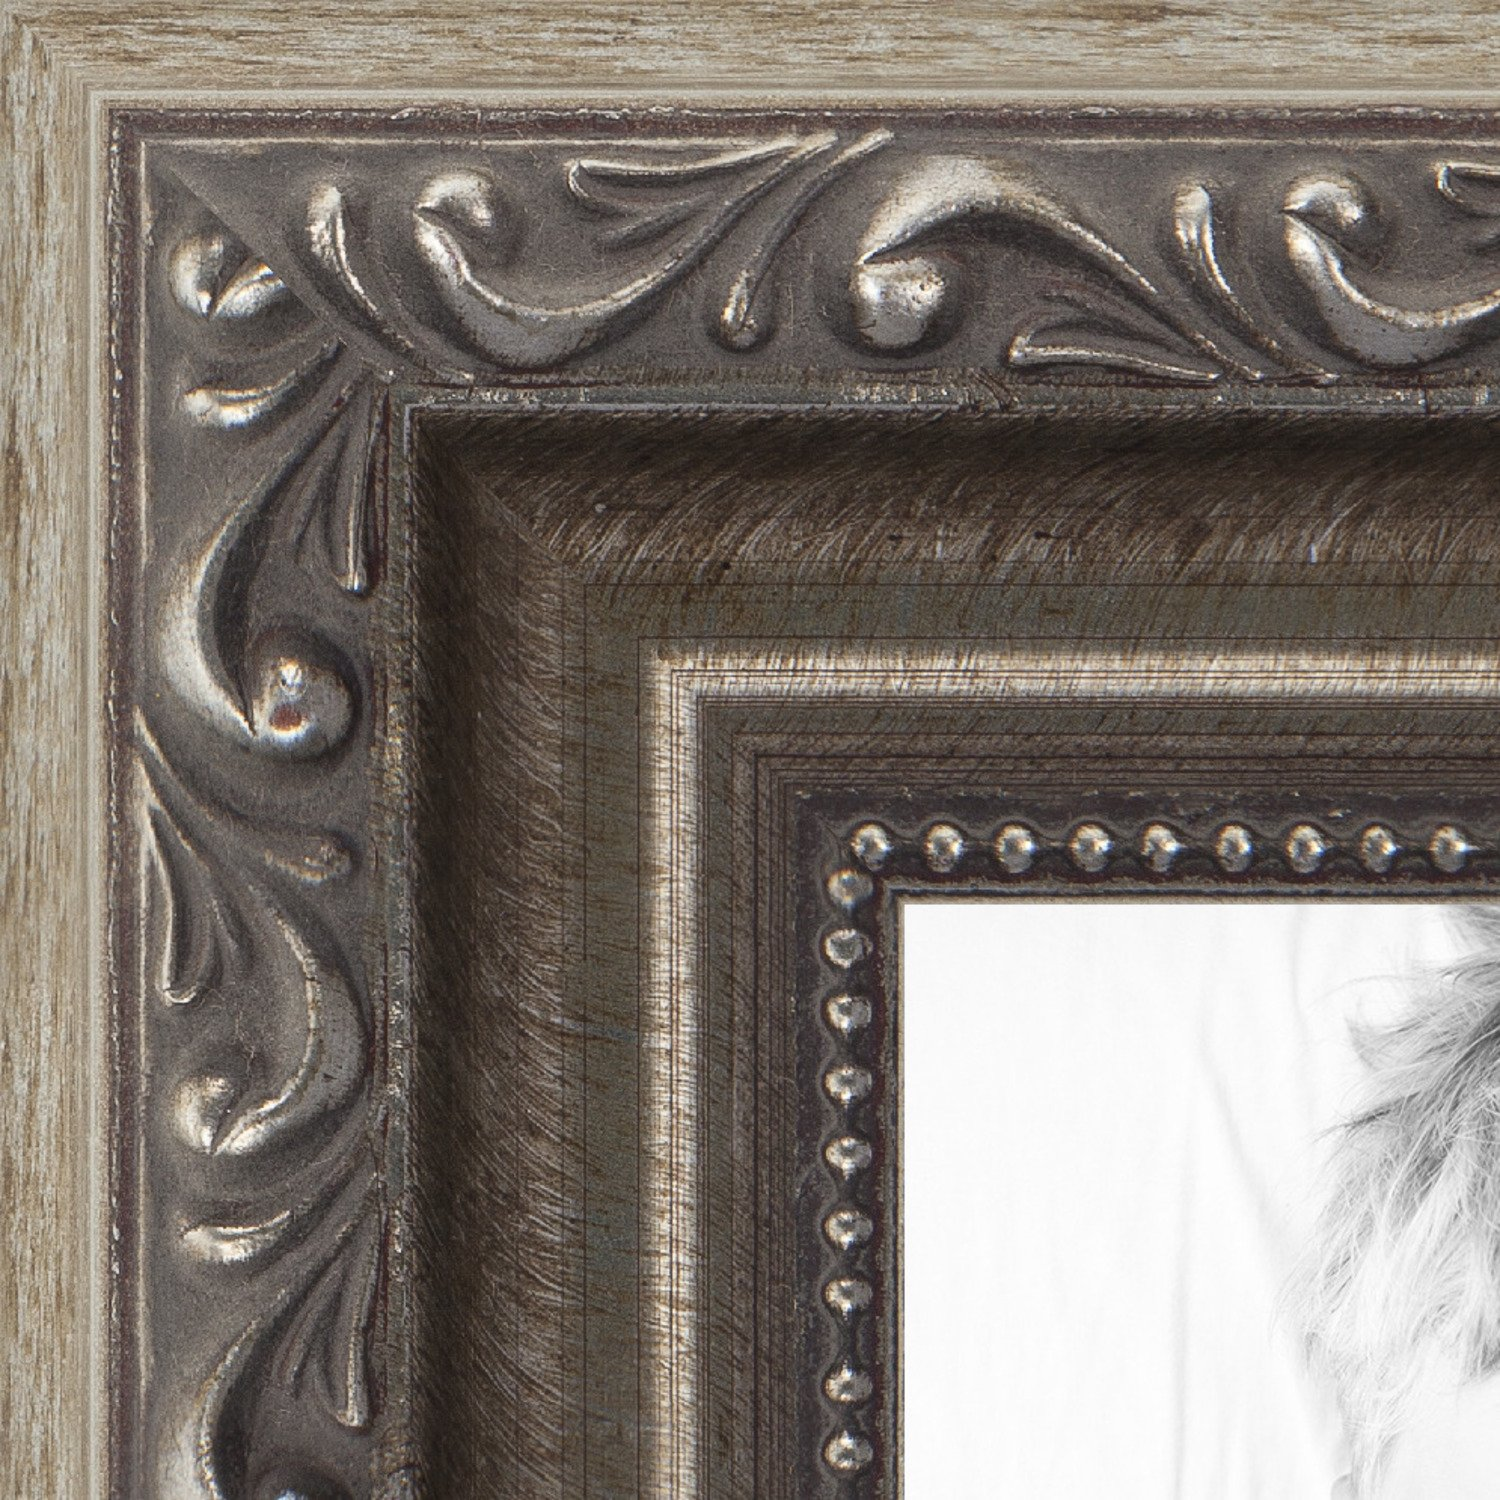 ArtToFrames 11x14 inch Antique Silver with Beads Wood Picture Frame, WOMD6661-11x14